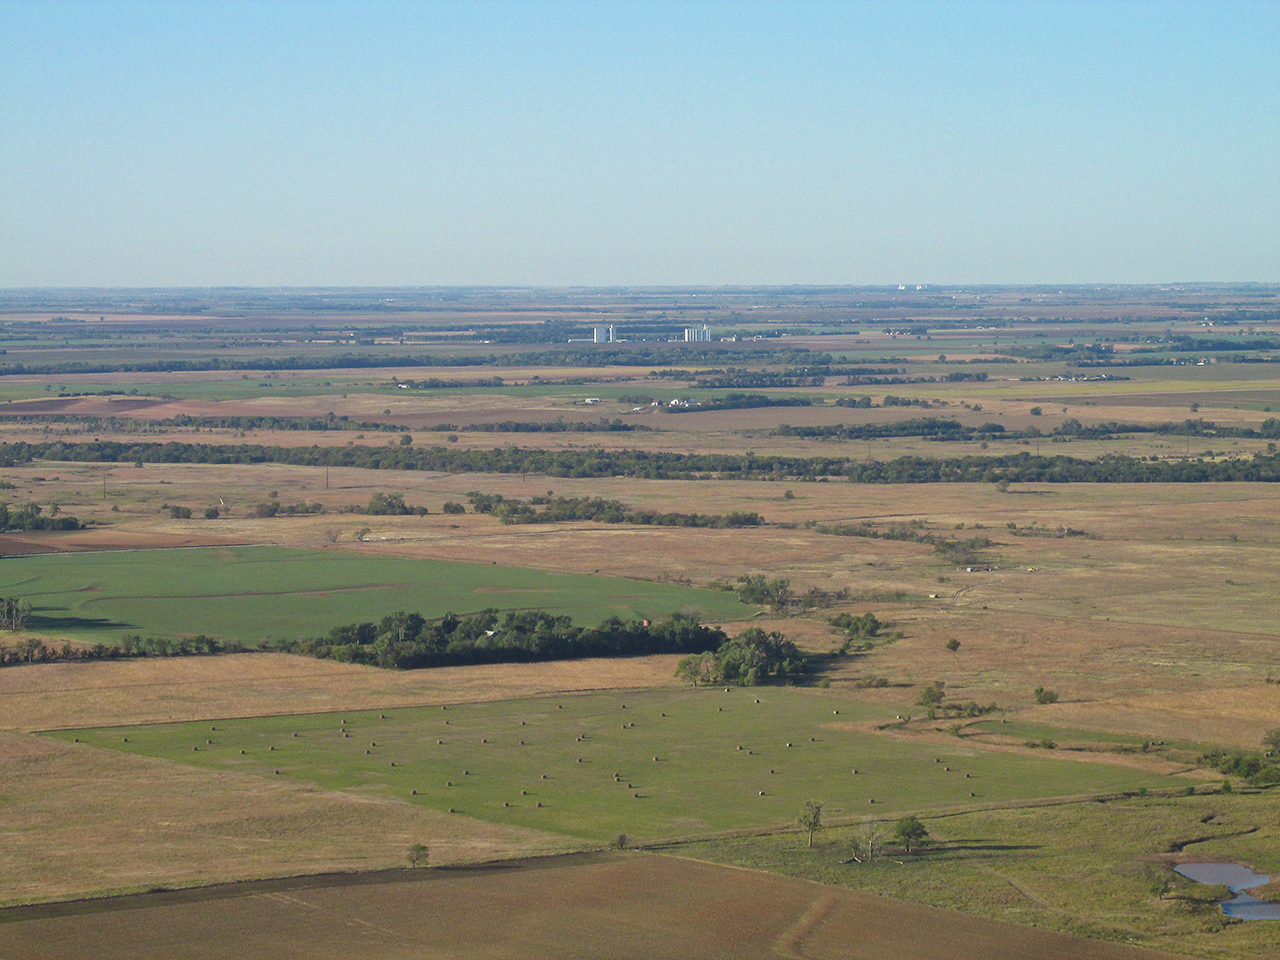 Kansas harper county attica - Still About 20 Miles From Attica I Took This Telephoto Shot To Show Harper Kansas In The Foreground In Relation To Attica In The Distance